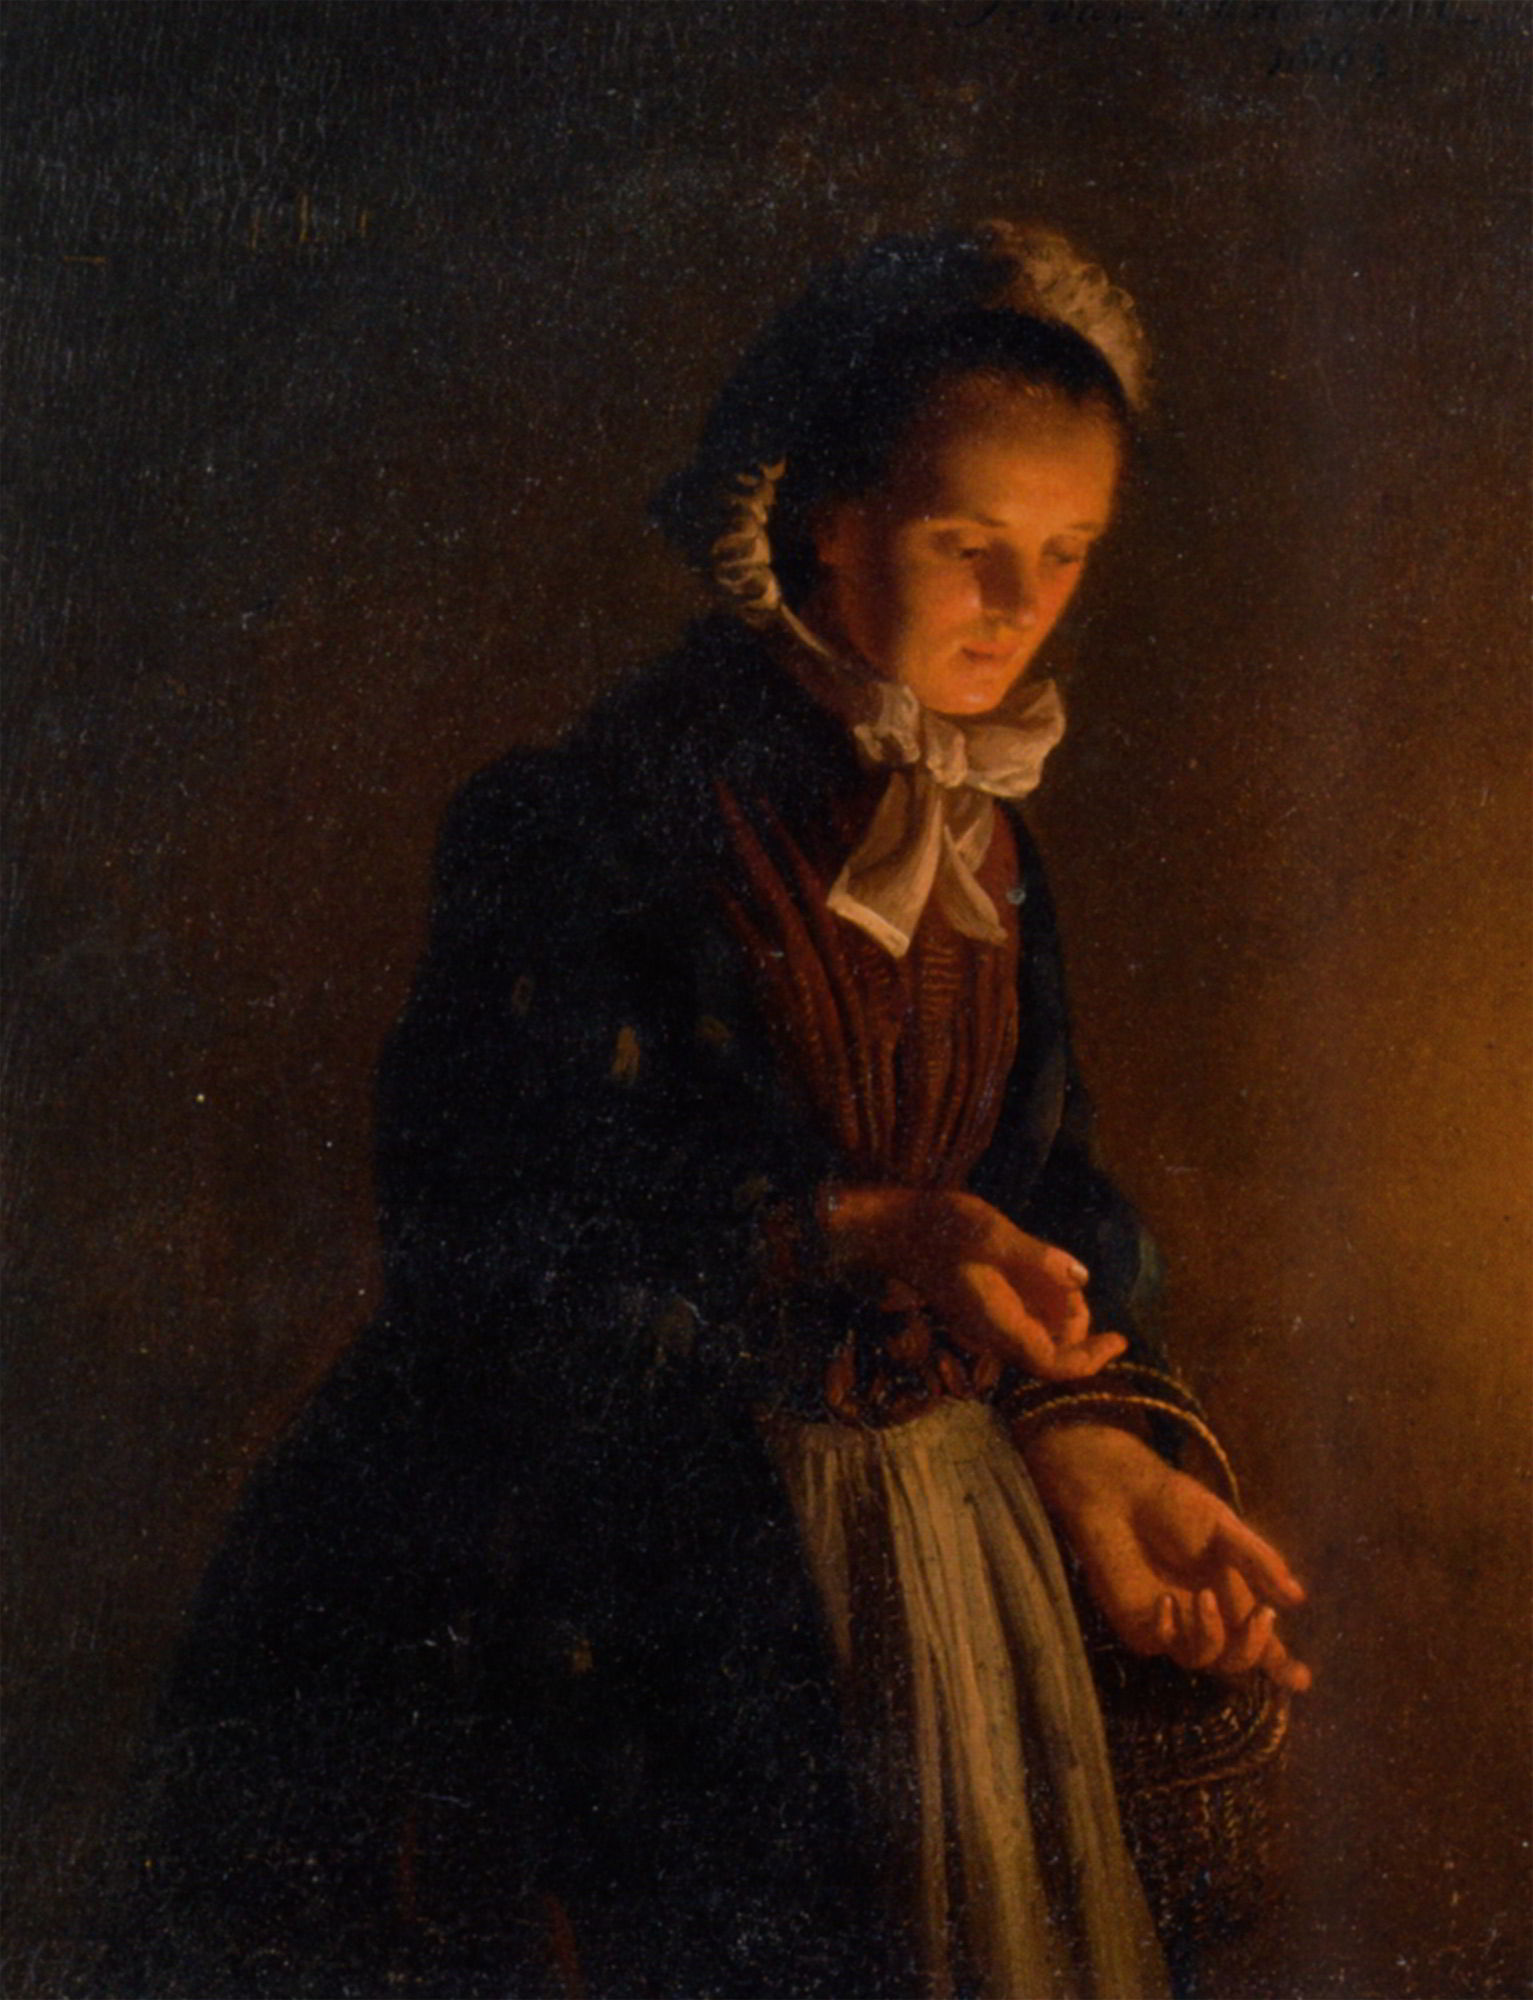 Candle Light Painting A Servant Girl By Candle Light By Petrus Van Schendel